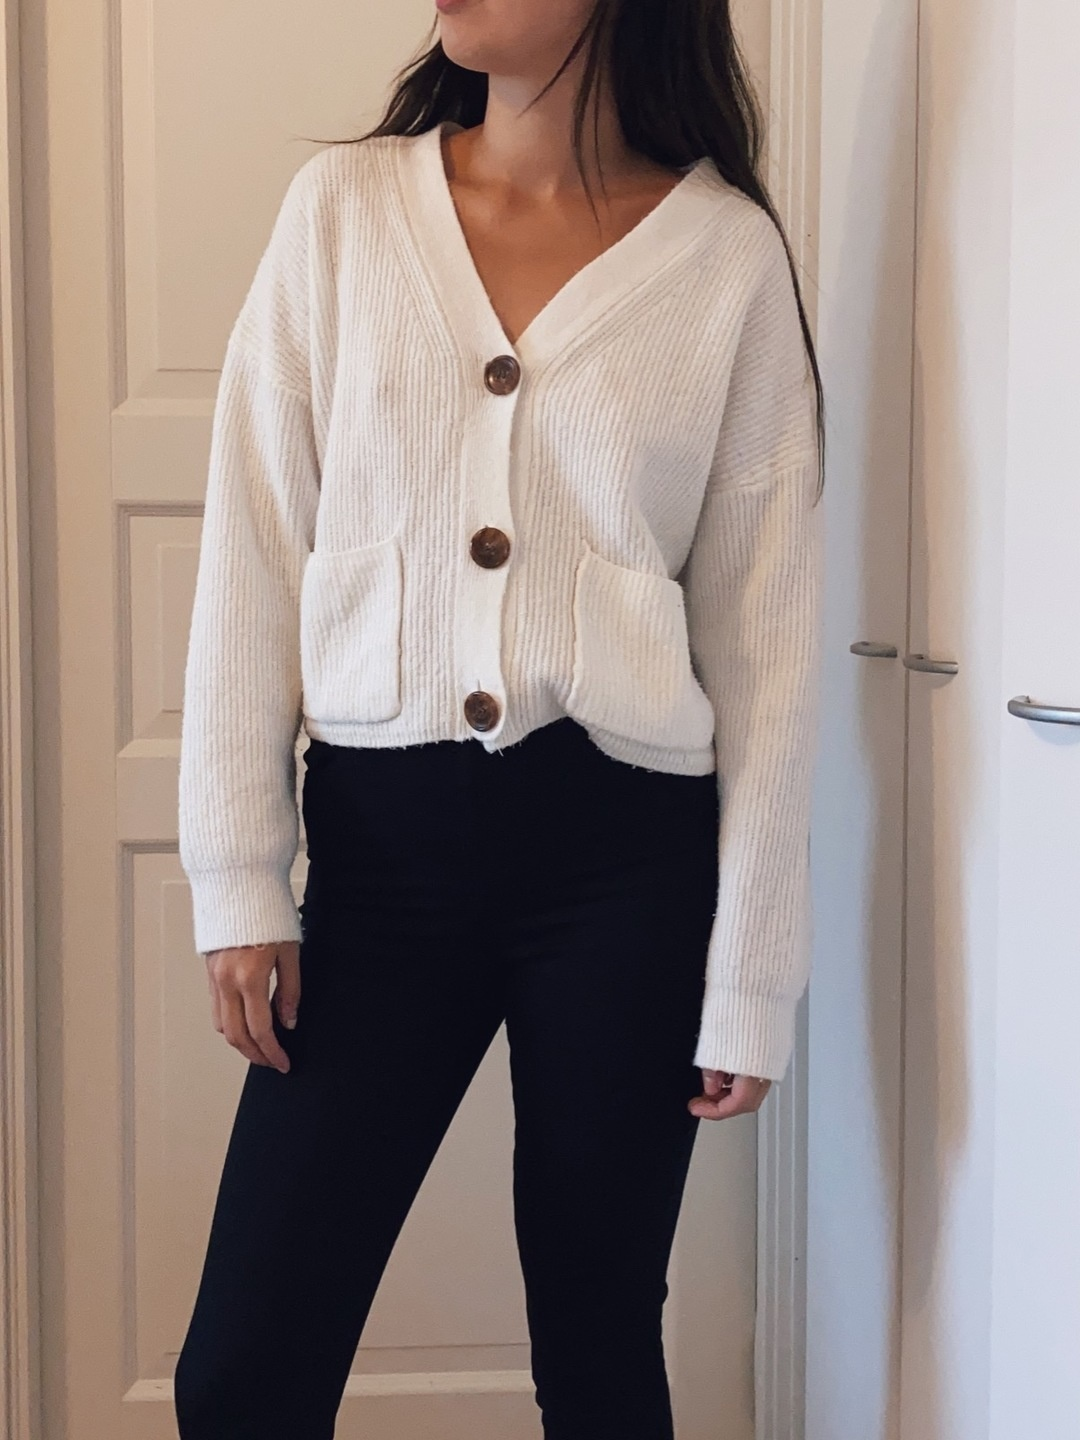 Women's jumpers & cardigans - NEW LOOK photo 4